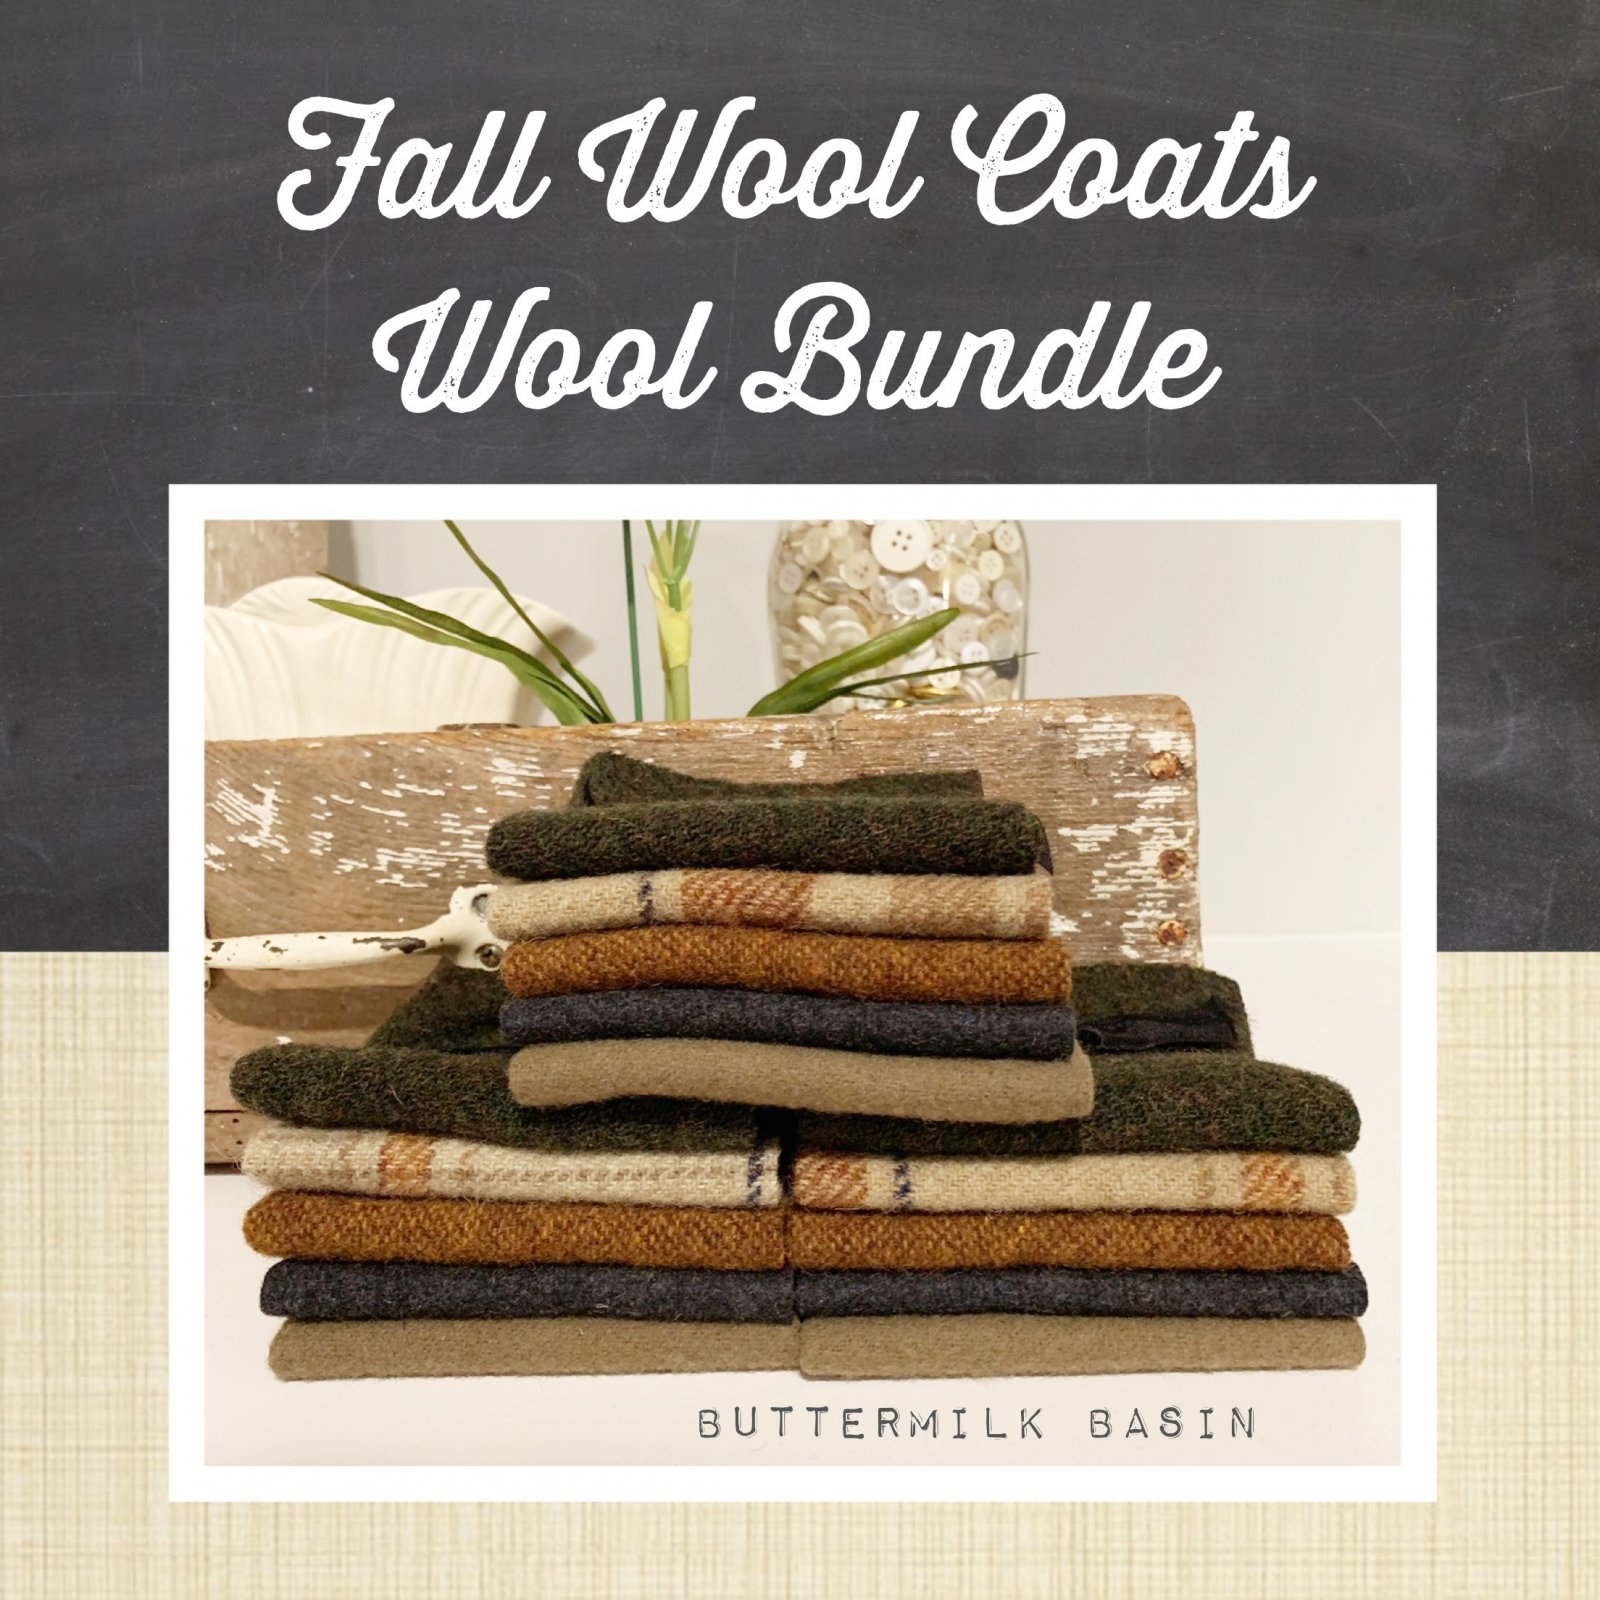 Fall Wool Coats Wool Bundle